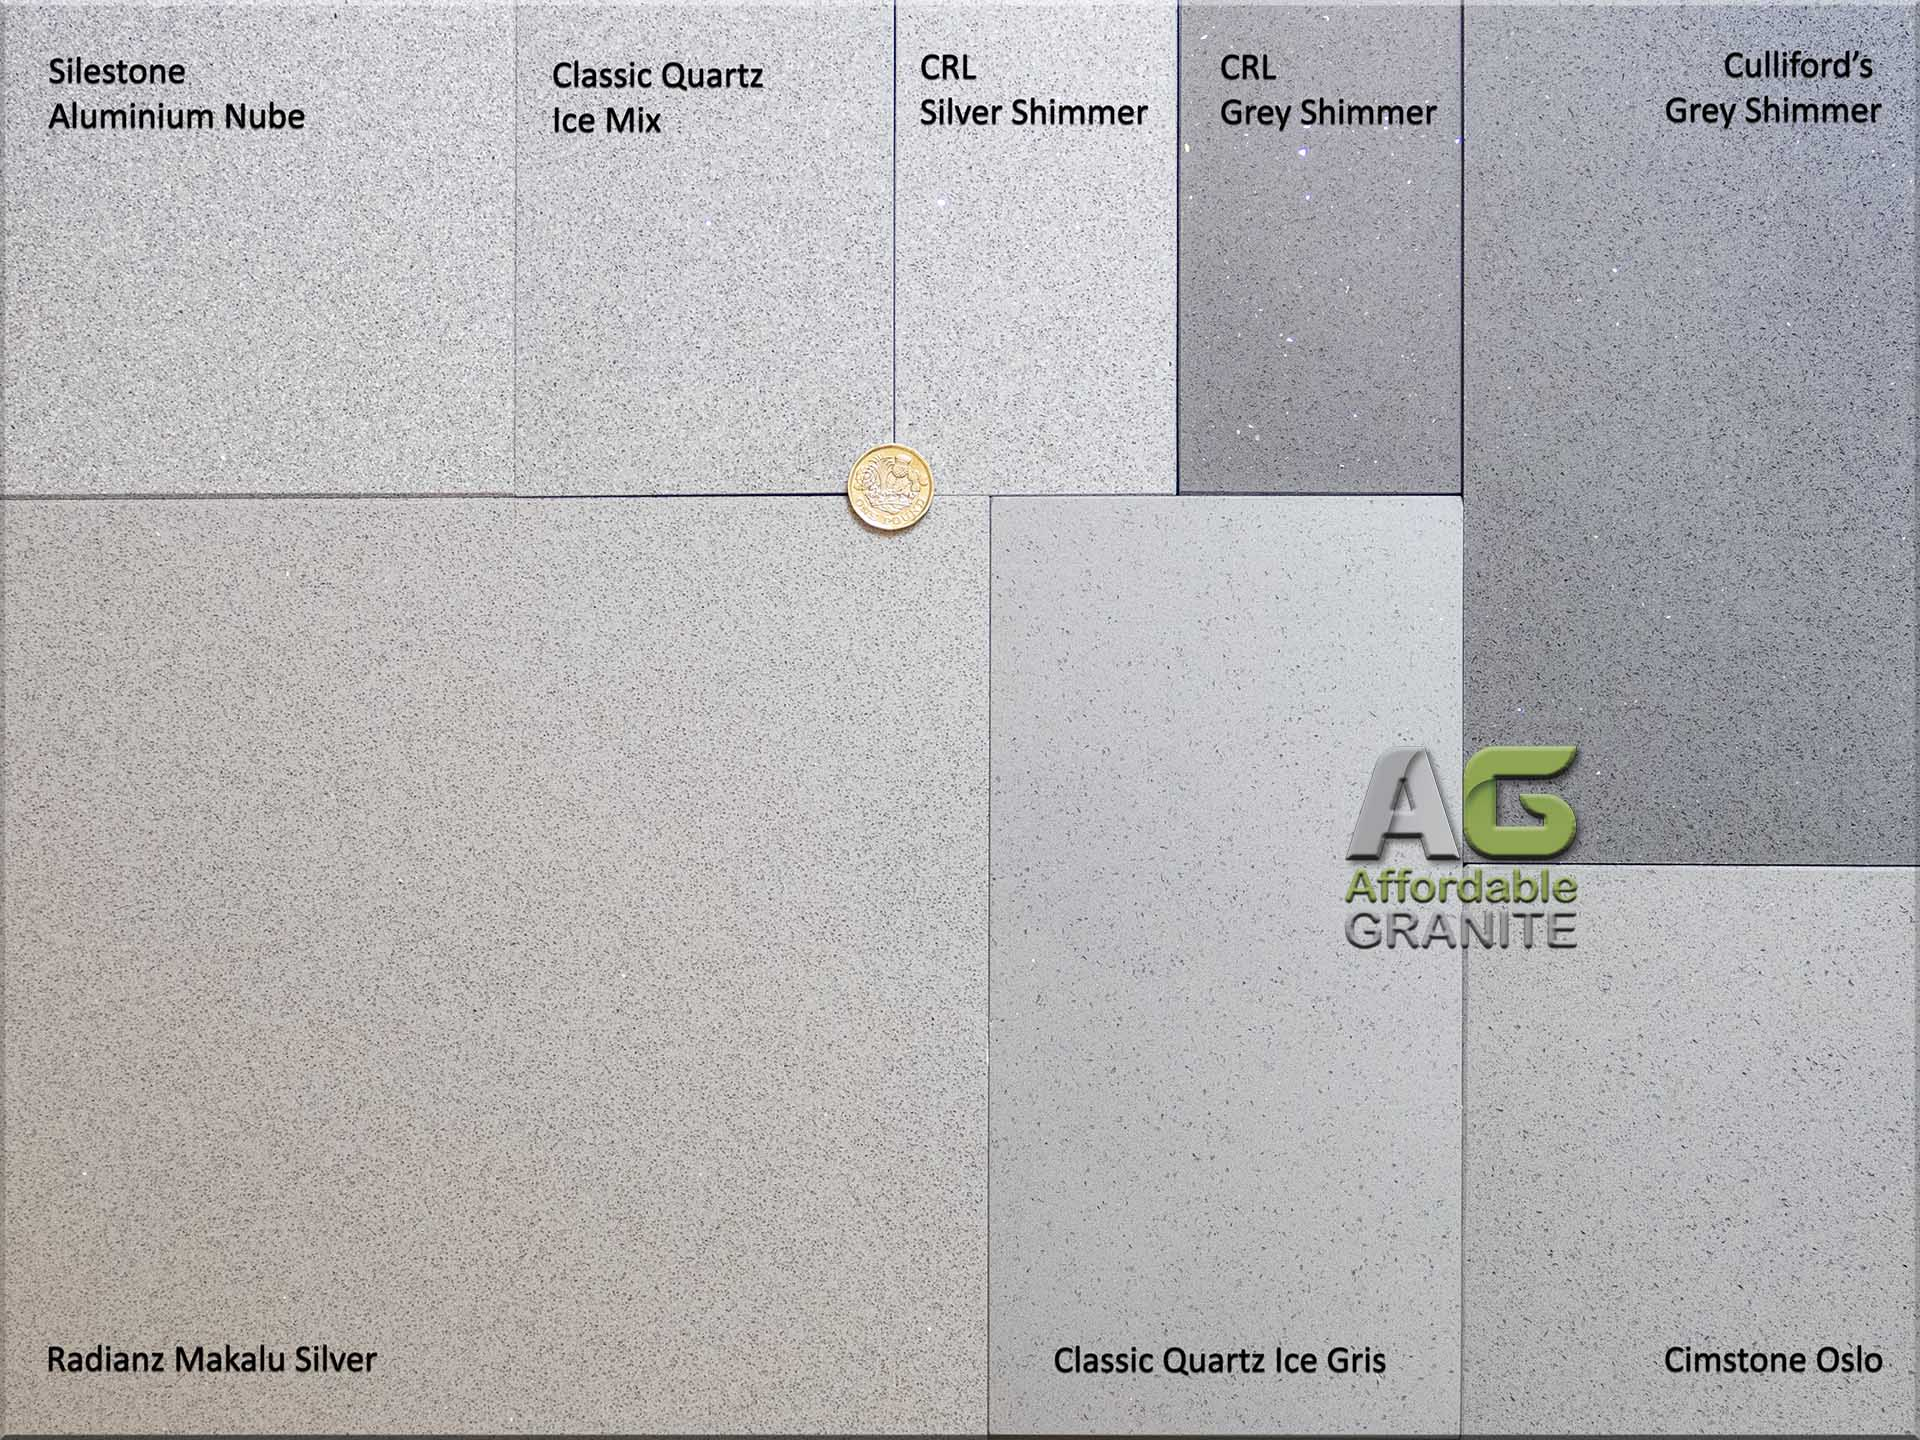 small sparkles Silestone Aluminio Nube CQ Ice Mix Ice Gris CRL Silver Shimmer Grey Shimmer Culliford Grey Shimmer Cimstone Oslo Radianz Makalu Silver redw